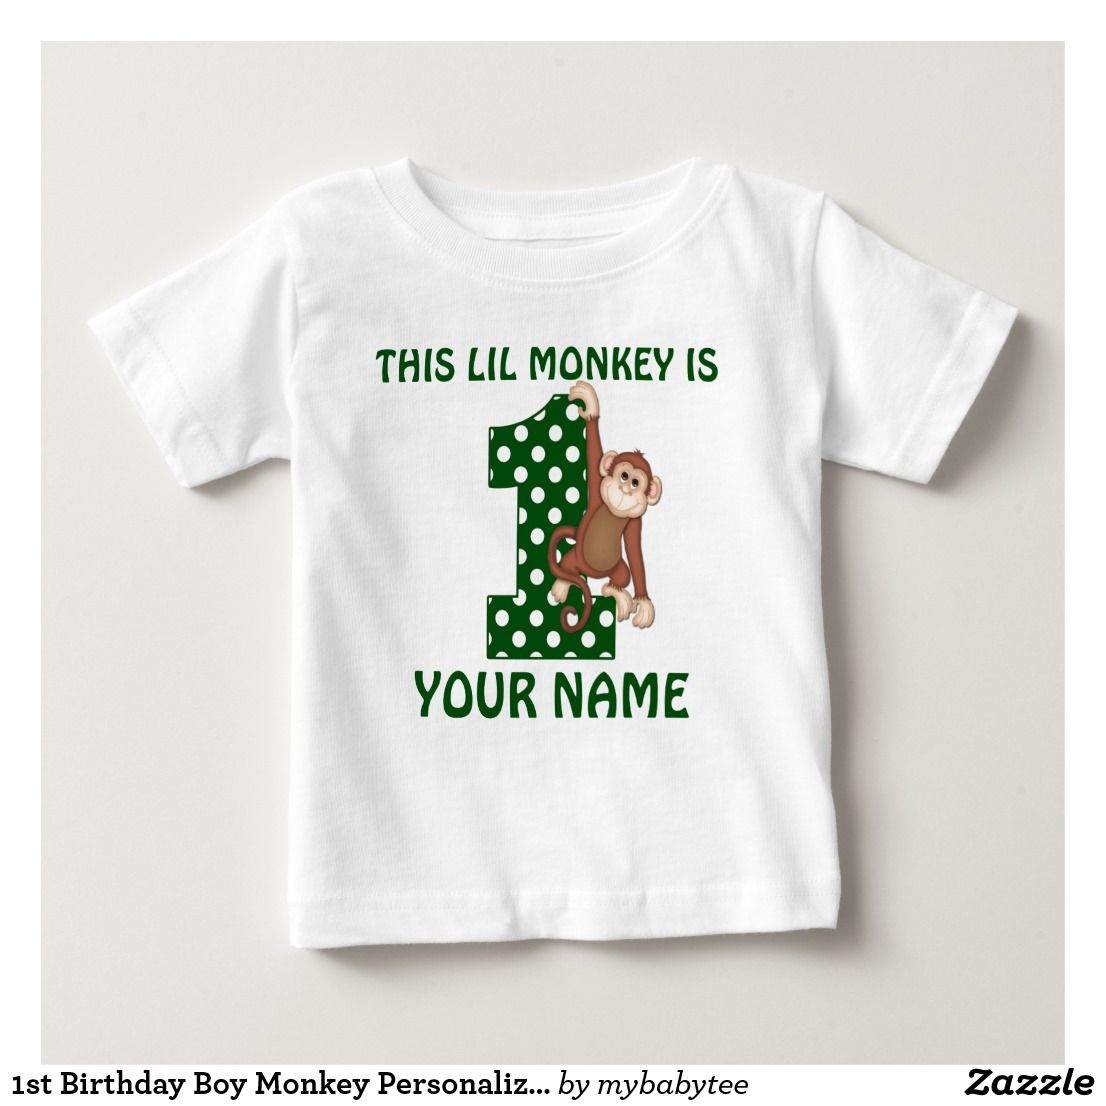 1st Birthday Boy Personalized Name Green Monkey Polka Dot Celebration Jungle Safari Shirt Junglemonkeybirthday